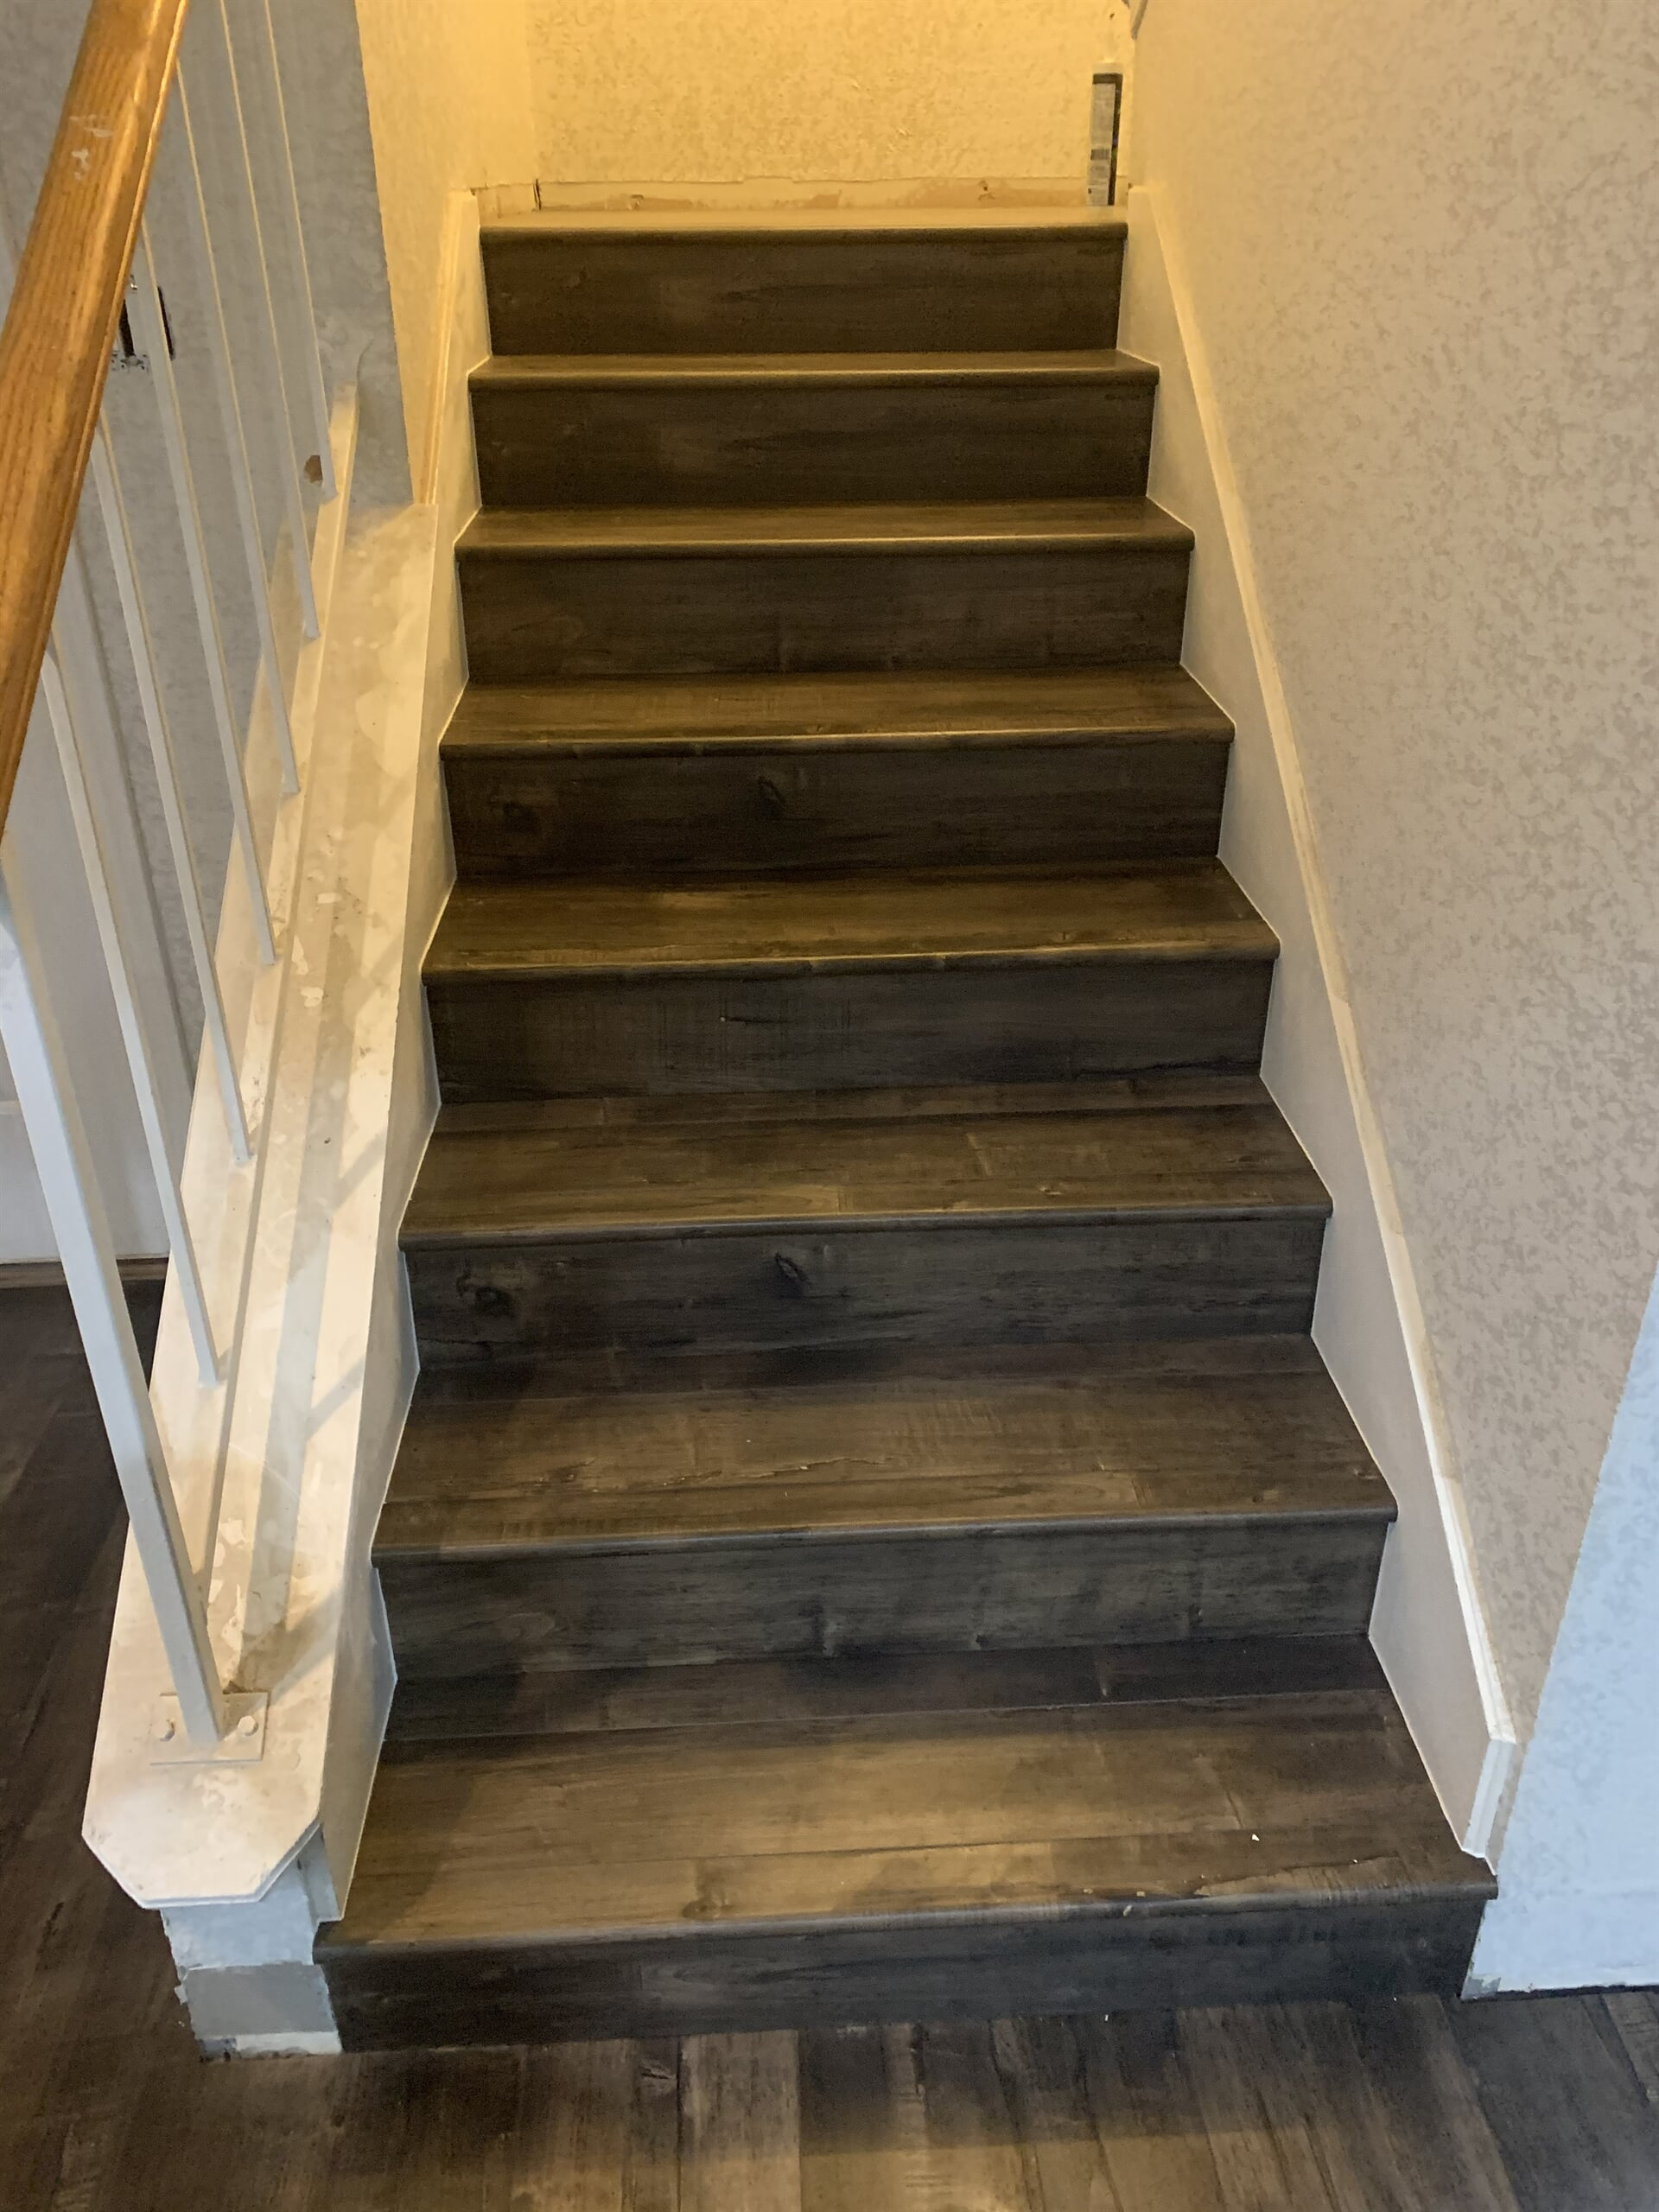 Hardwood stairs from Houston Floor Installation Services in Humble, TX